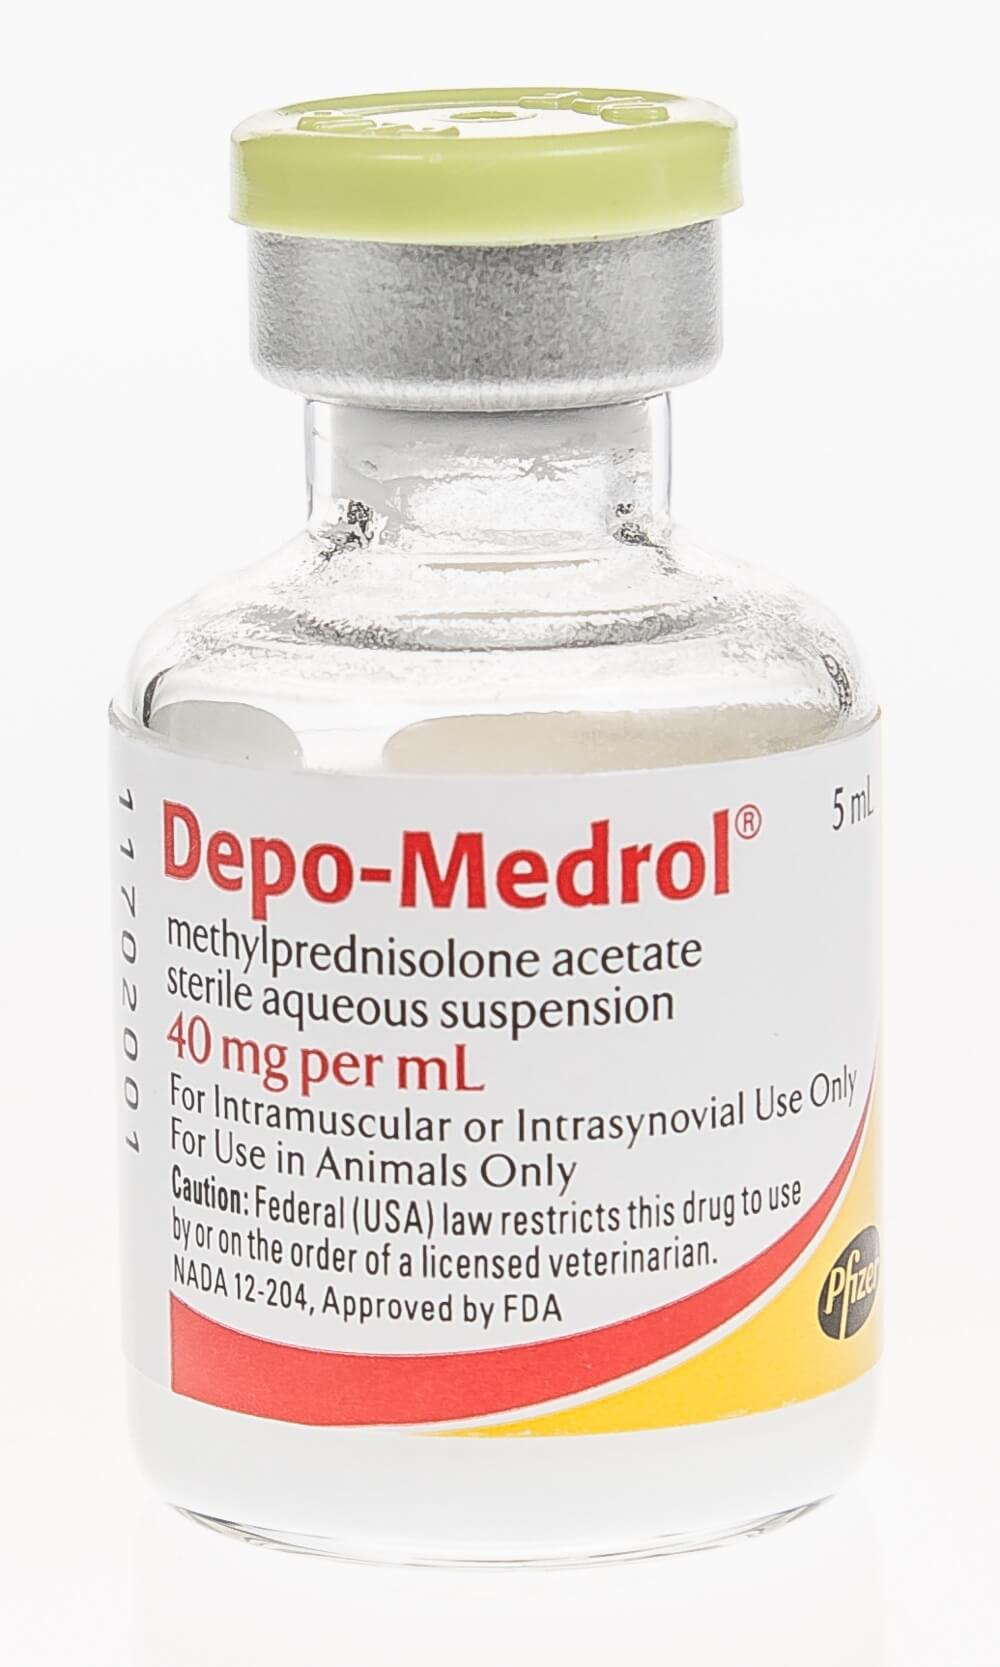 medrol steroid for dogs